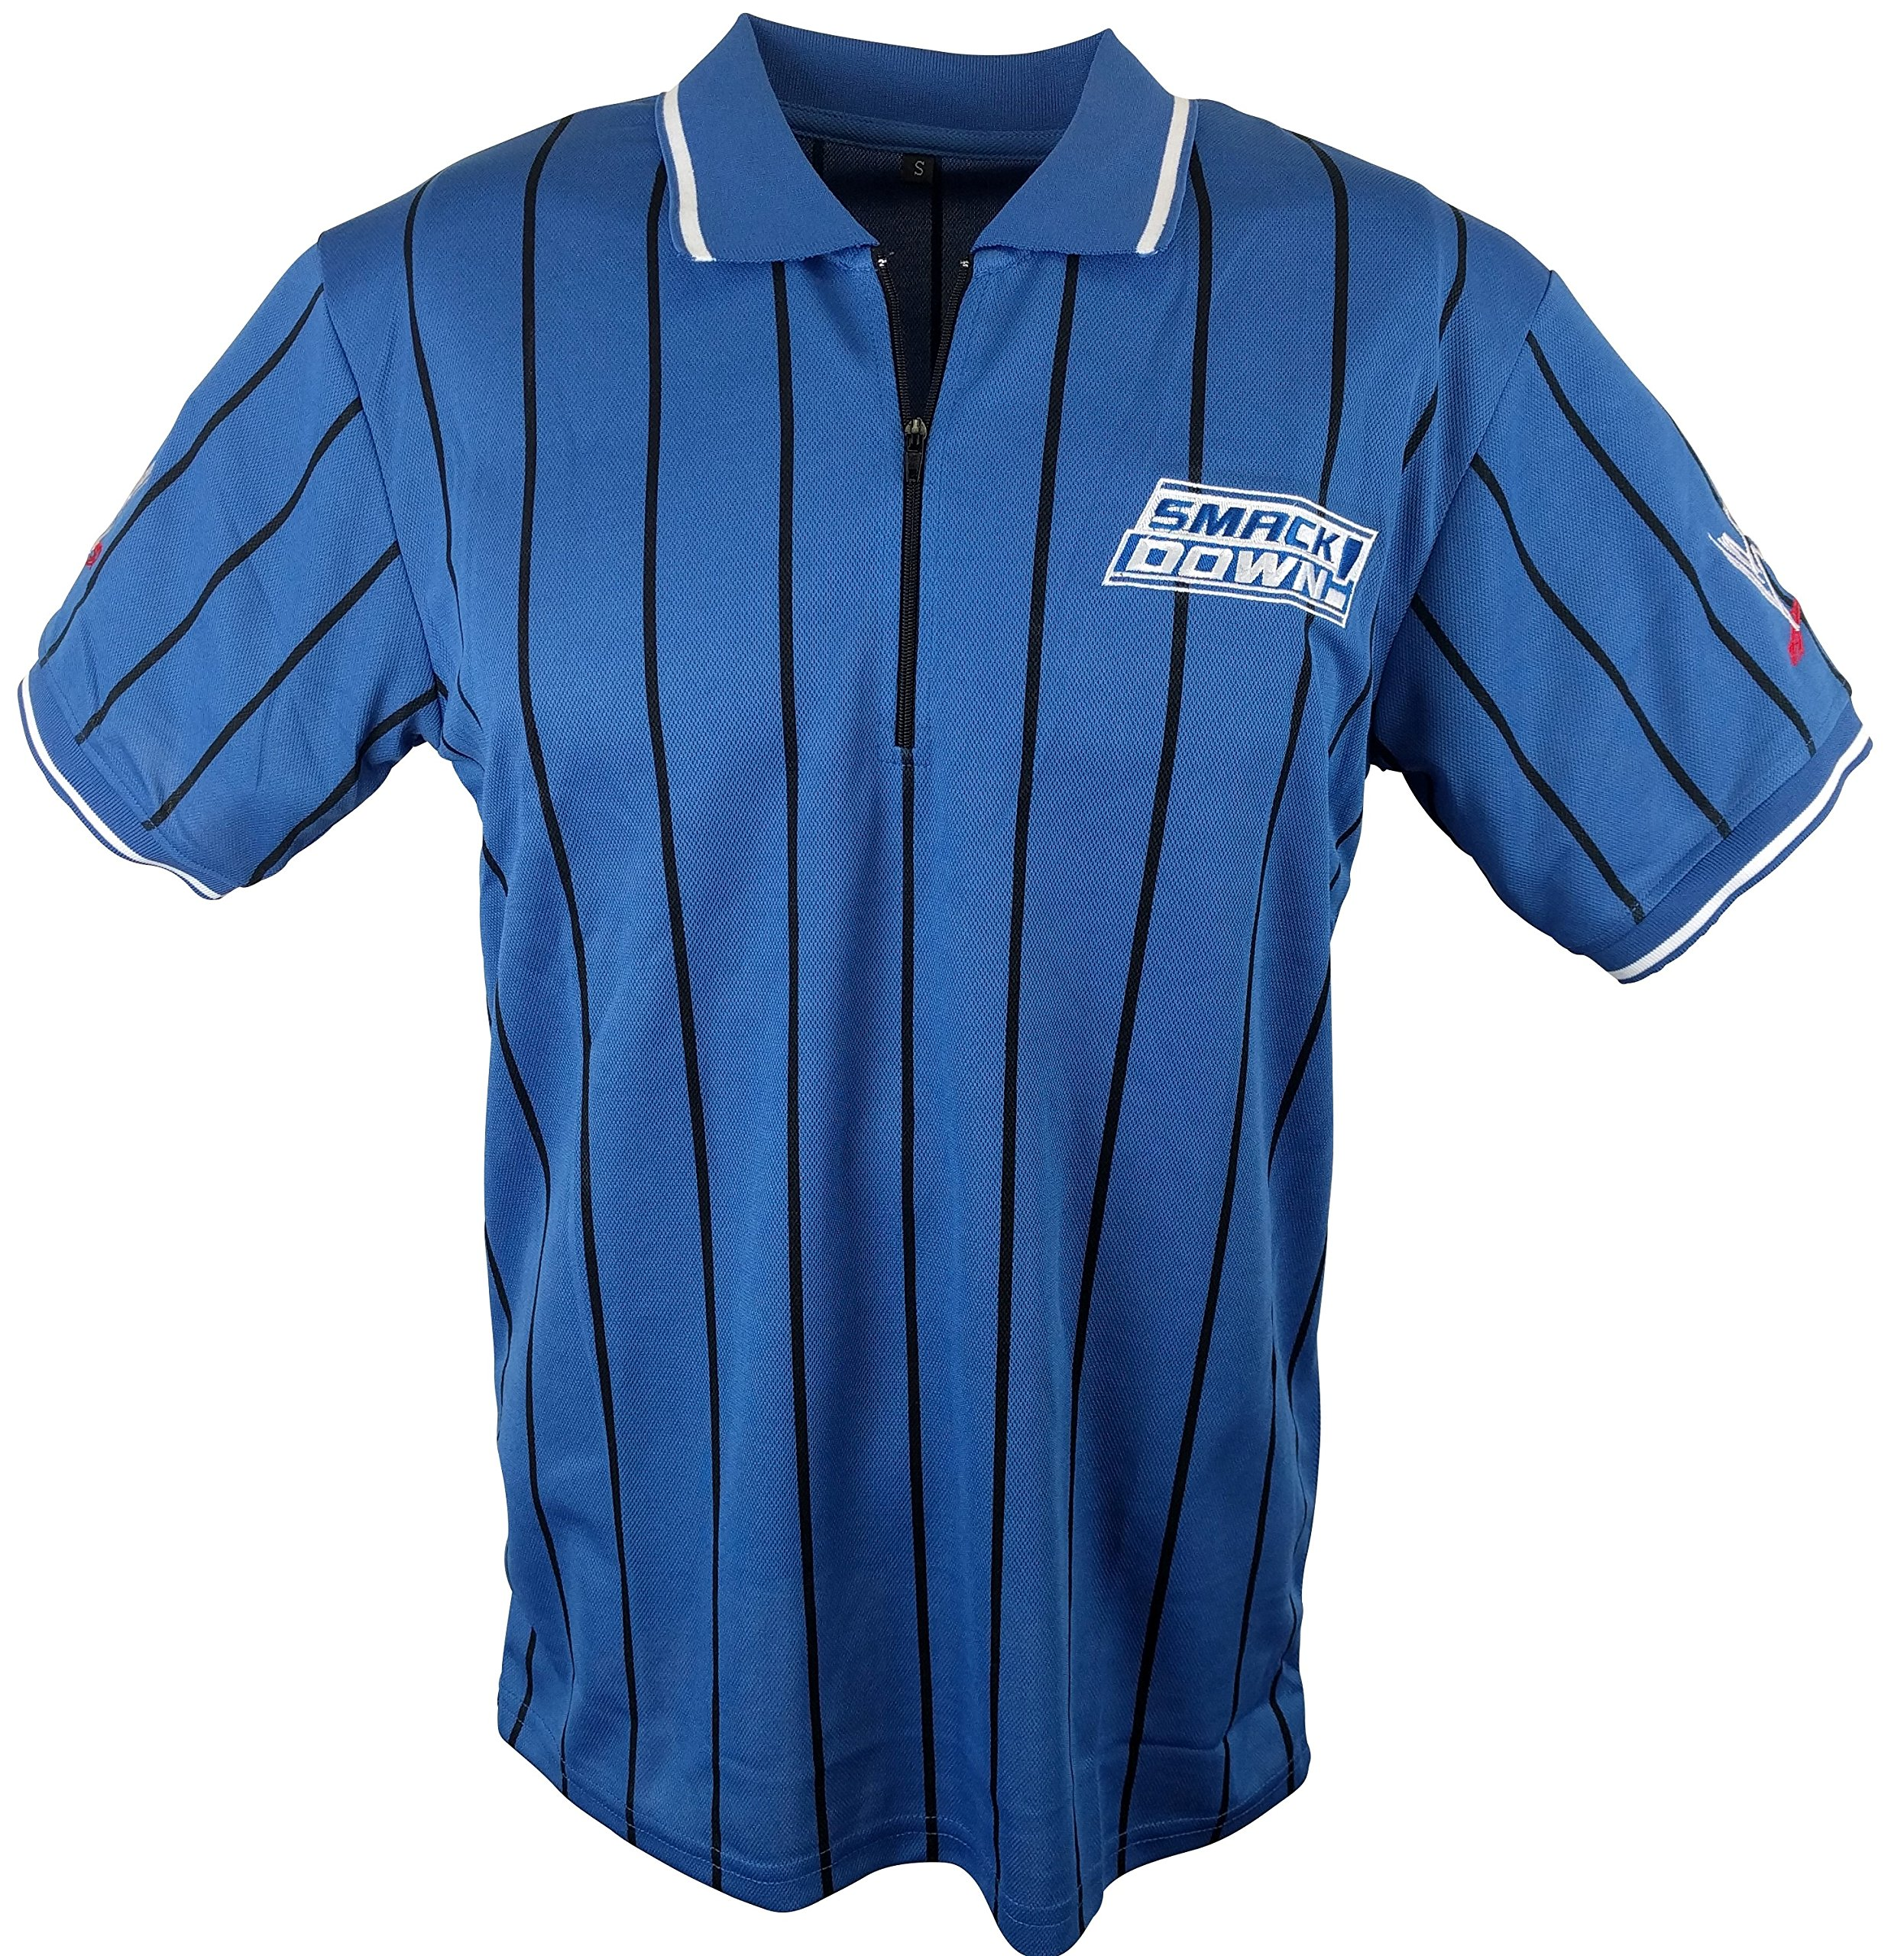 Smackdown Live WWE WWF Referee Shirt New Adult Sizes-L by Hybrid Tees